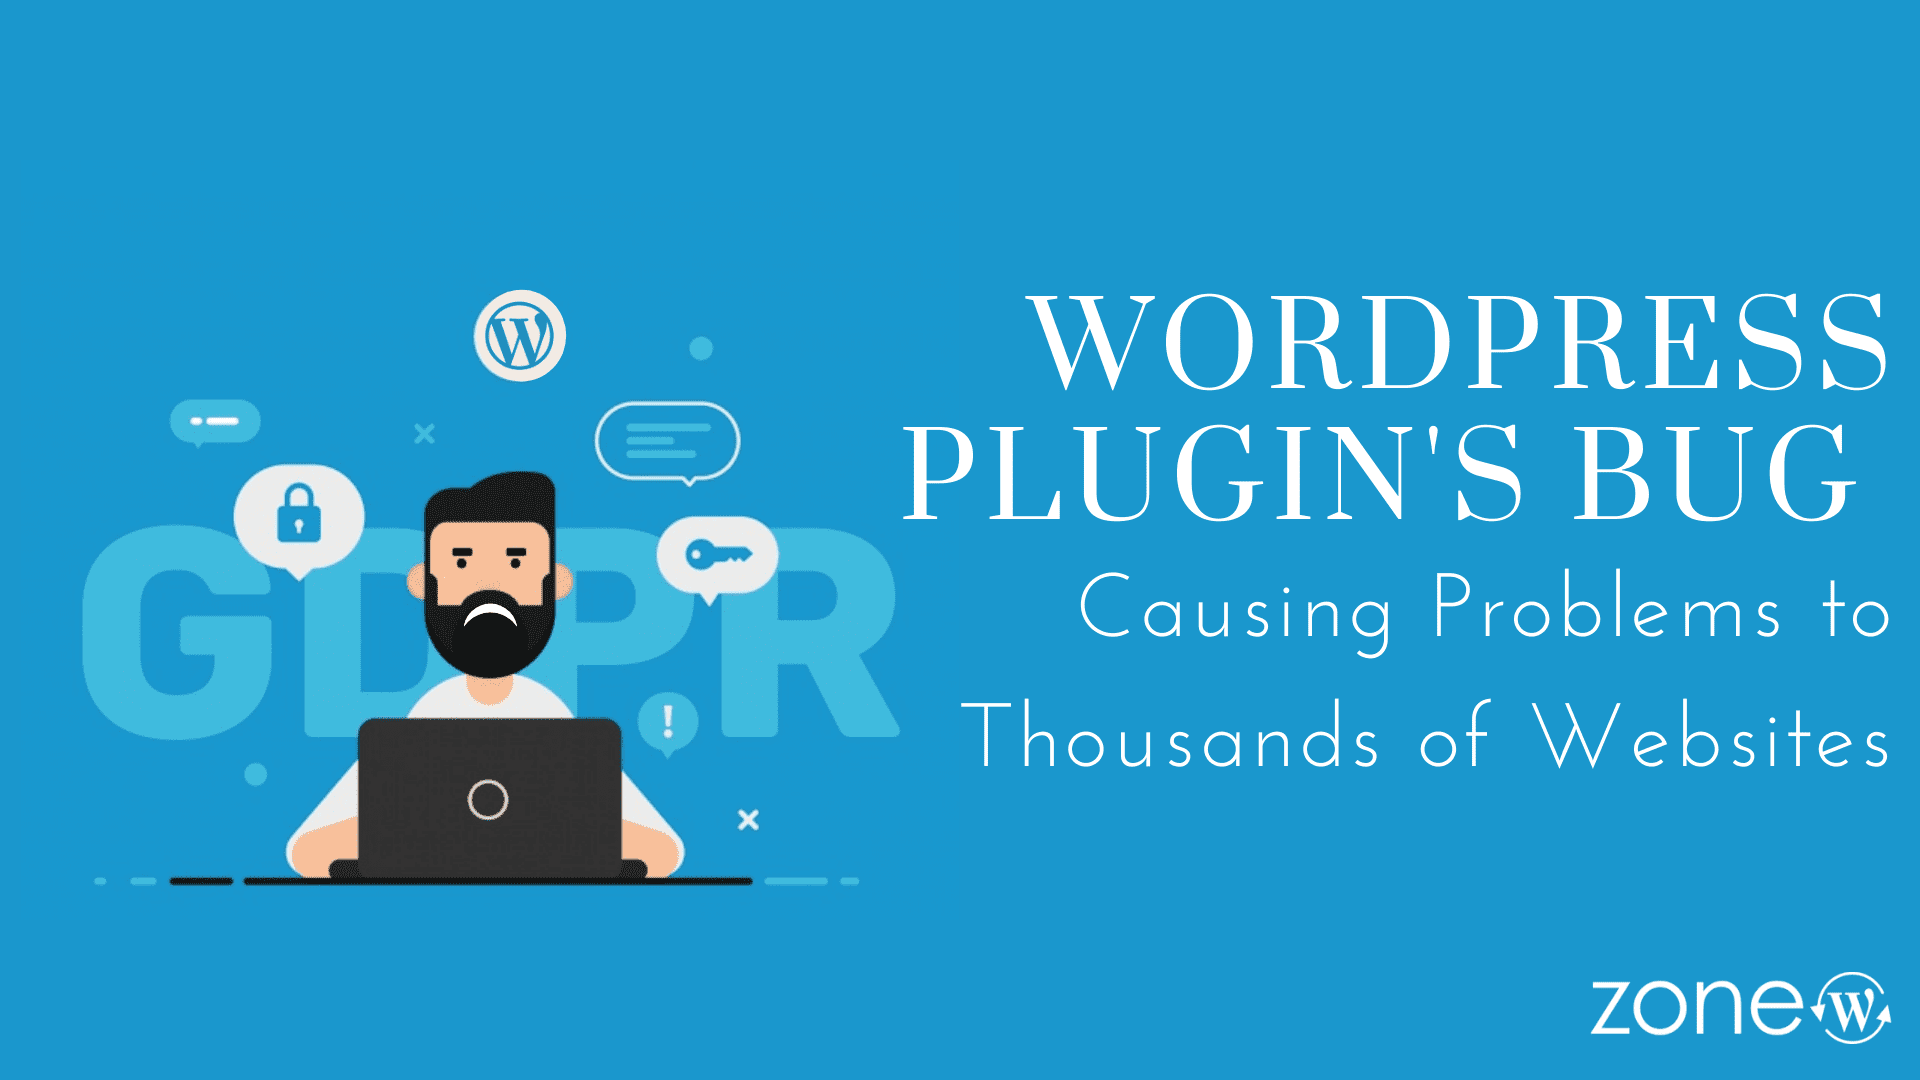 WordPress Plugin's Bug Causing Problems to Thousands of Websites